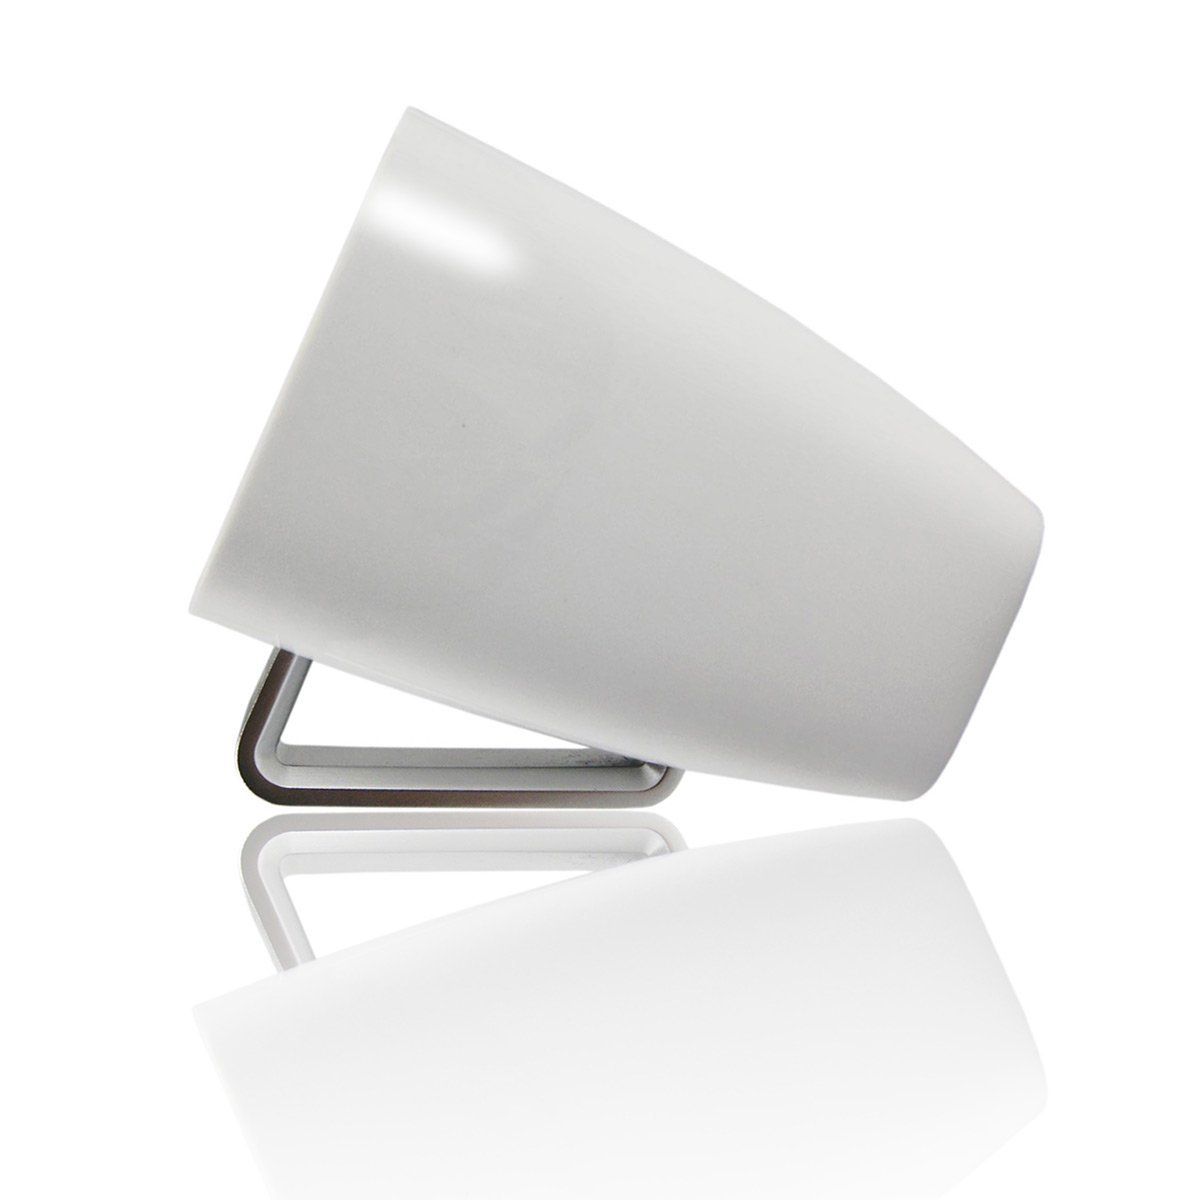 Music Cup Ultra Portable NFC Wireless Bluetooth Speaker - Piano White - Better Sound and Volume - Perfect Holiday Gift